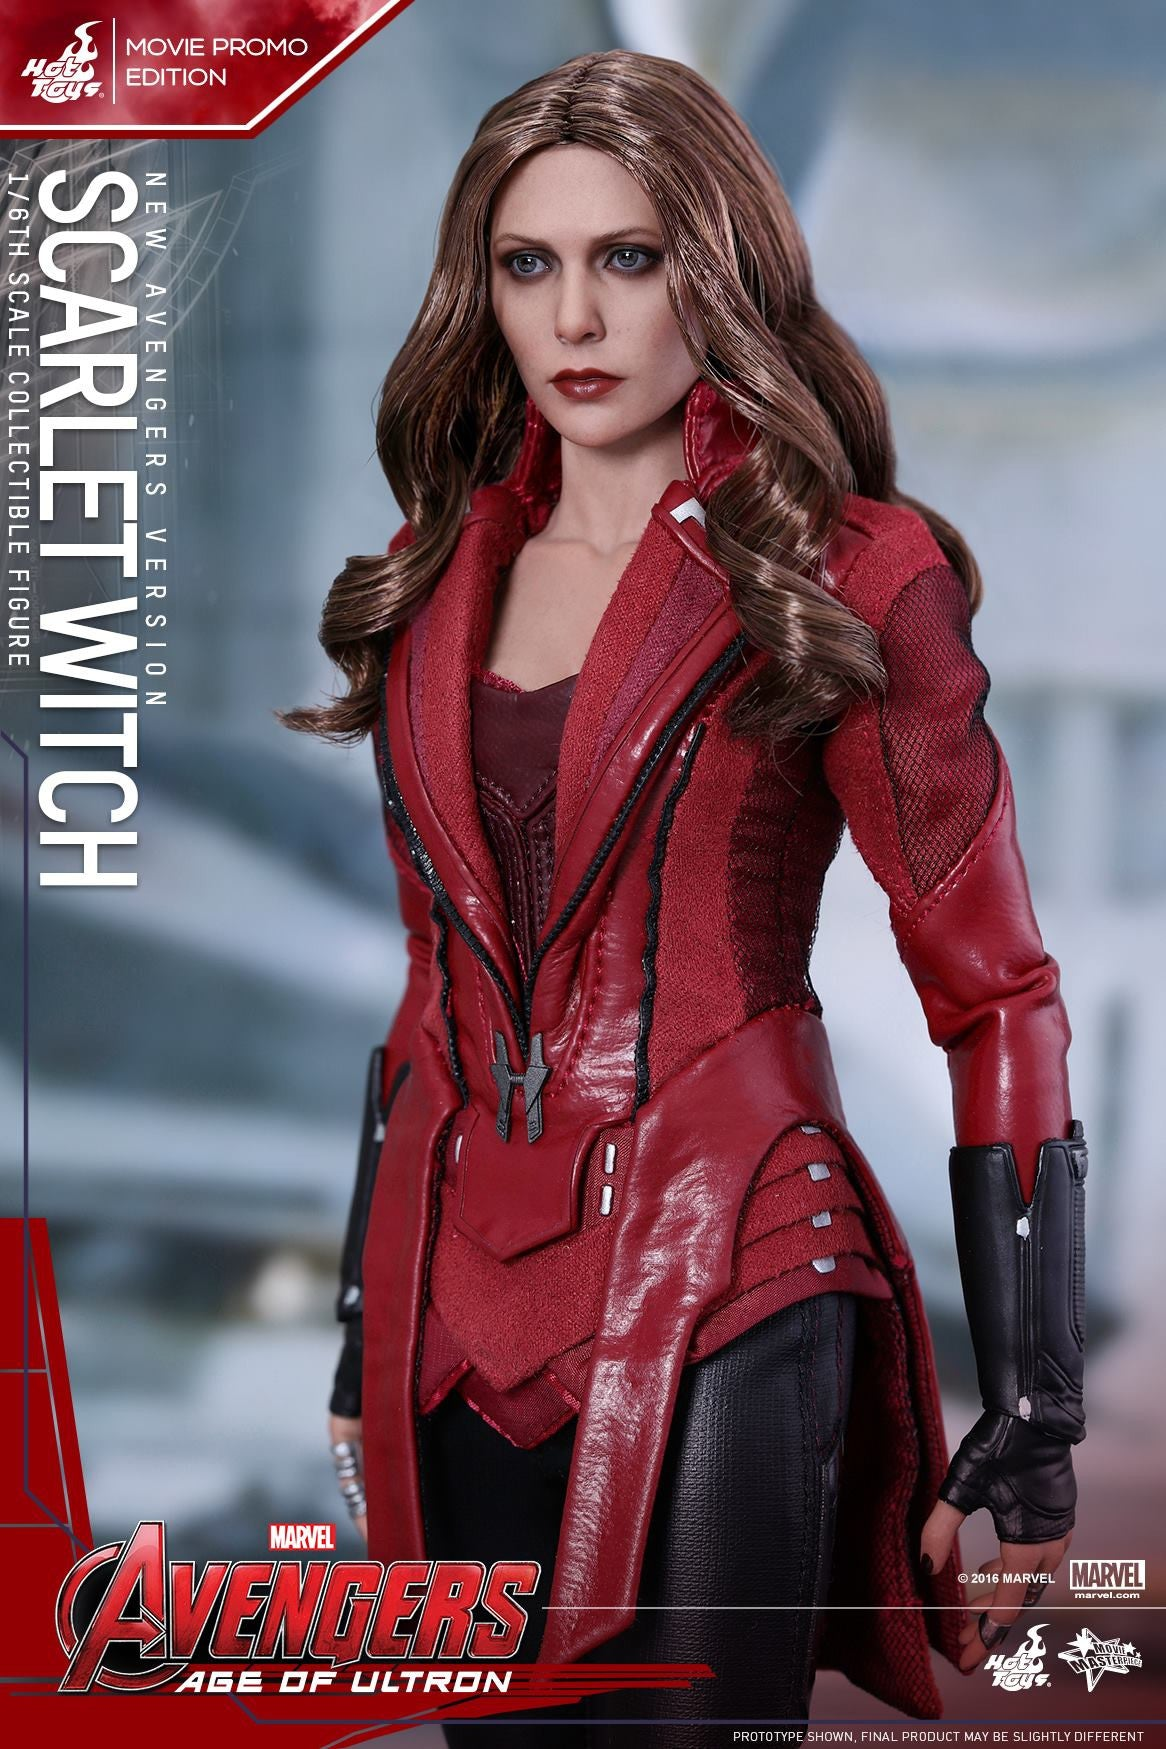 Toys - Avengers: Age of Ultron - Scarlet Witch (New Avengers Version) Movie Promo MMS357 - Marvelous Toys - 7